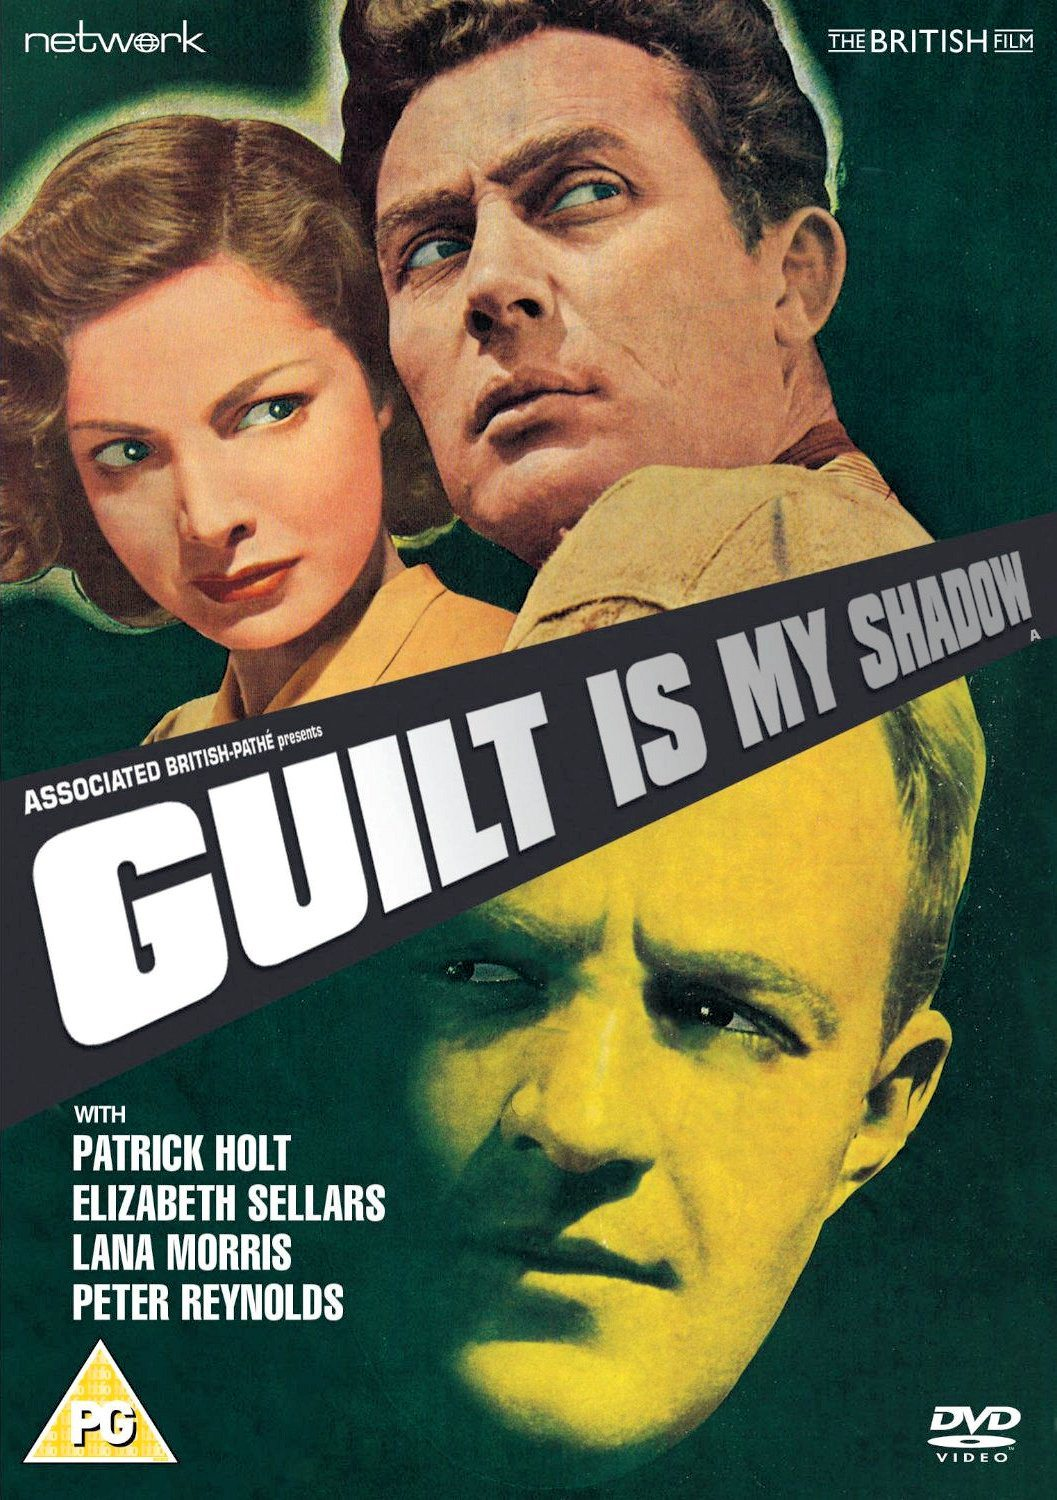 Guilt Is My Shadow DVD from Network and The British Film